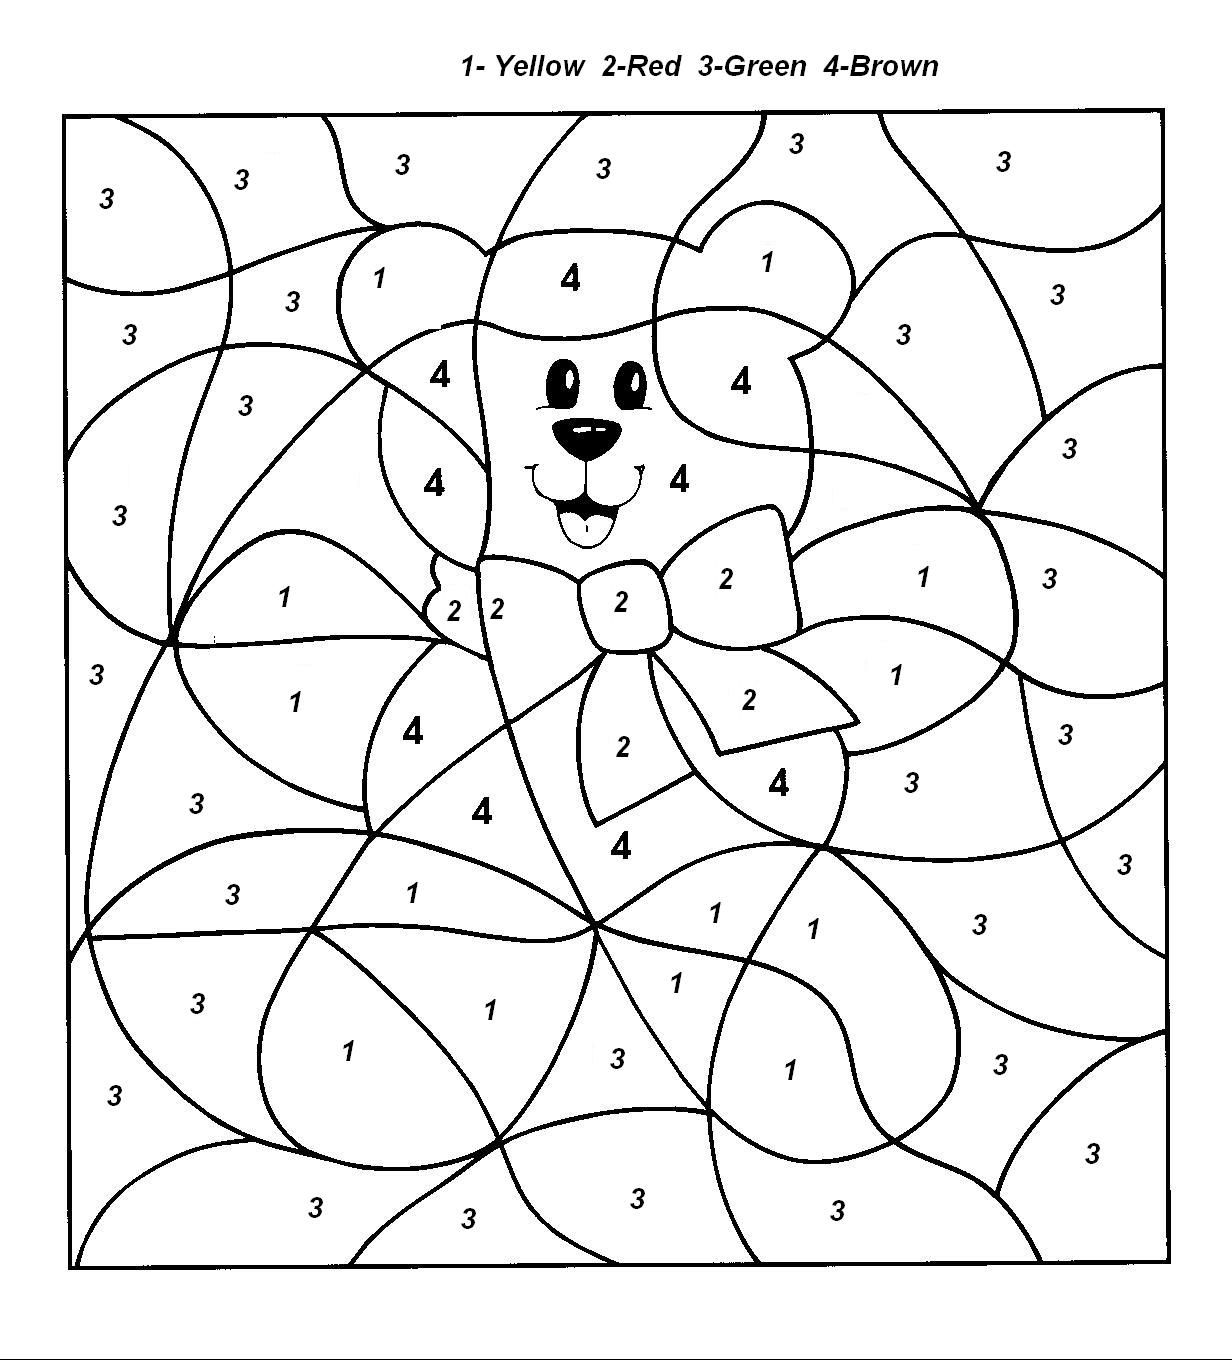 Coloring pages numbers - Number Coloring Worksheets For Kindergarten Coloring Ideas